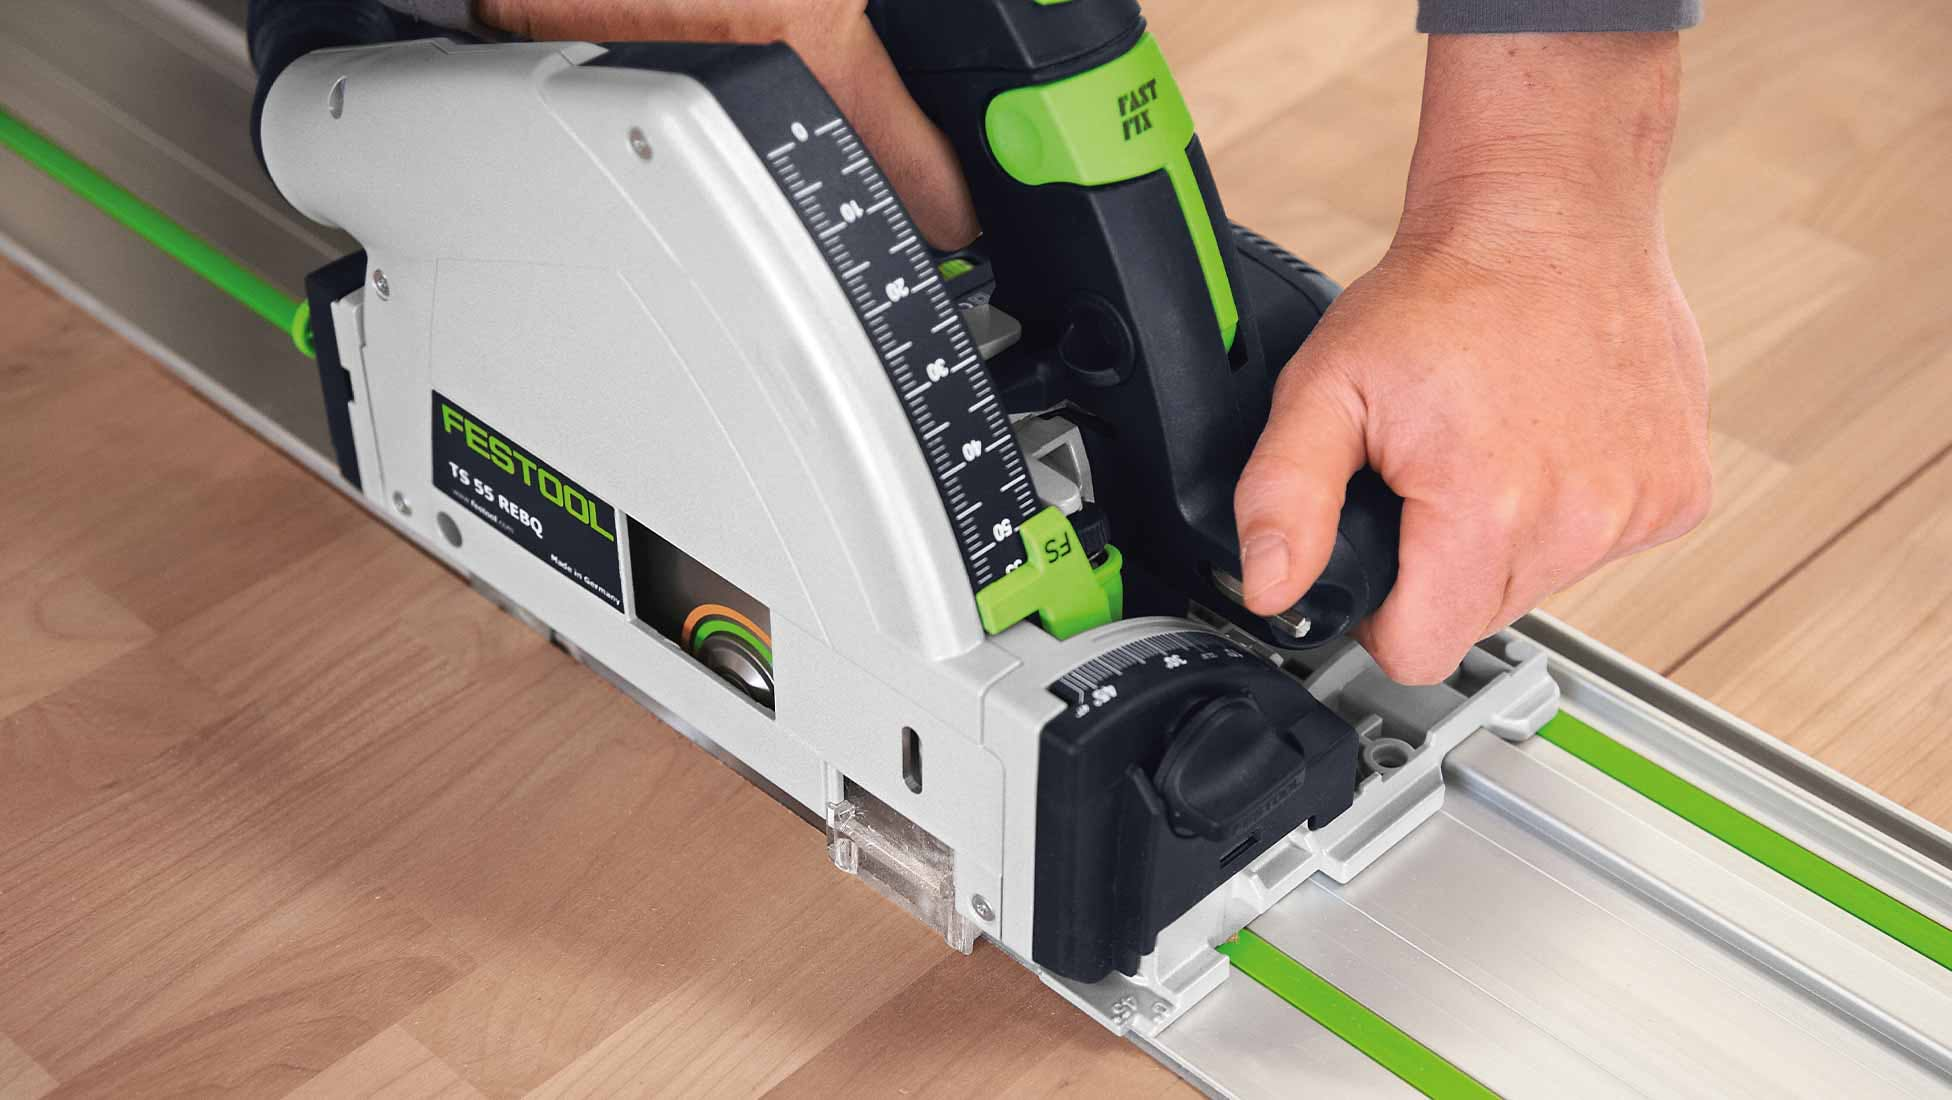 Festool TS55R EBQ-Plus-FS Plunge Saw, 2 x 1,400mm Rails & Accessories